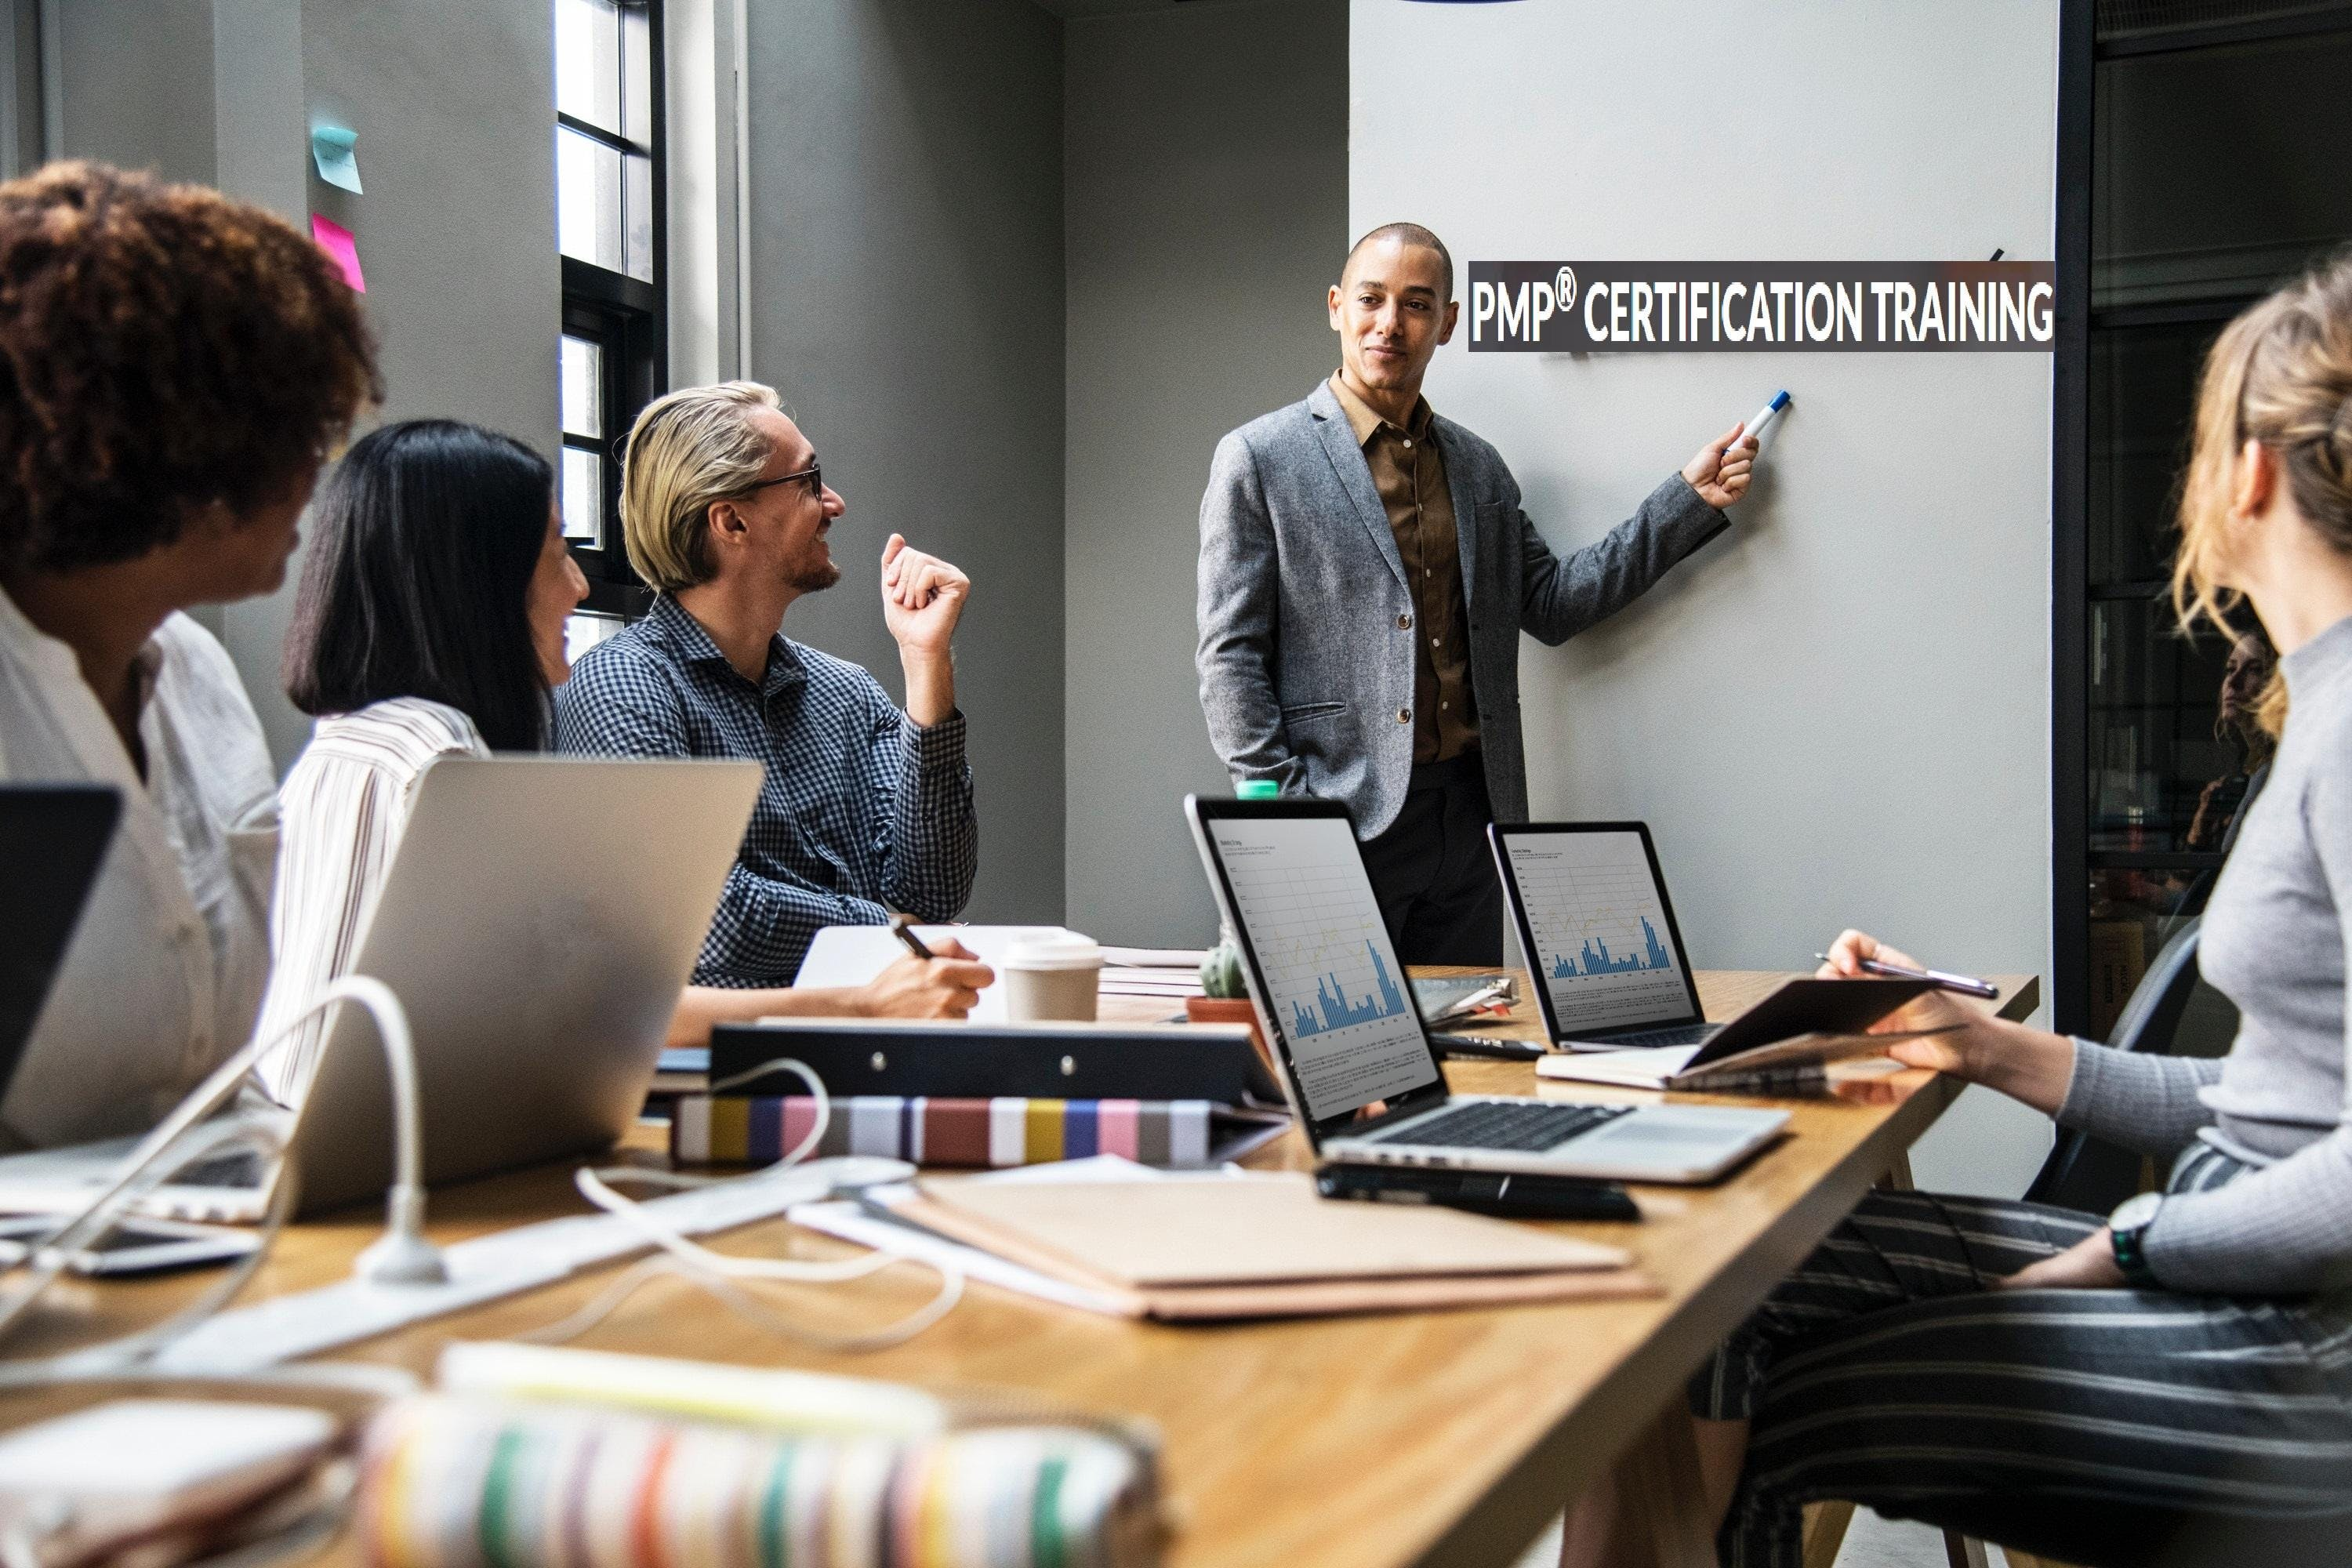 Pmp Training Course In Washington Dc 9 Oct 2018